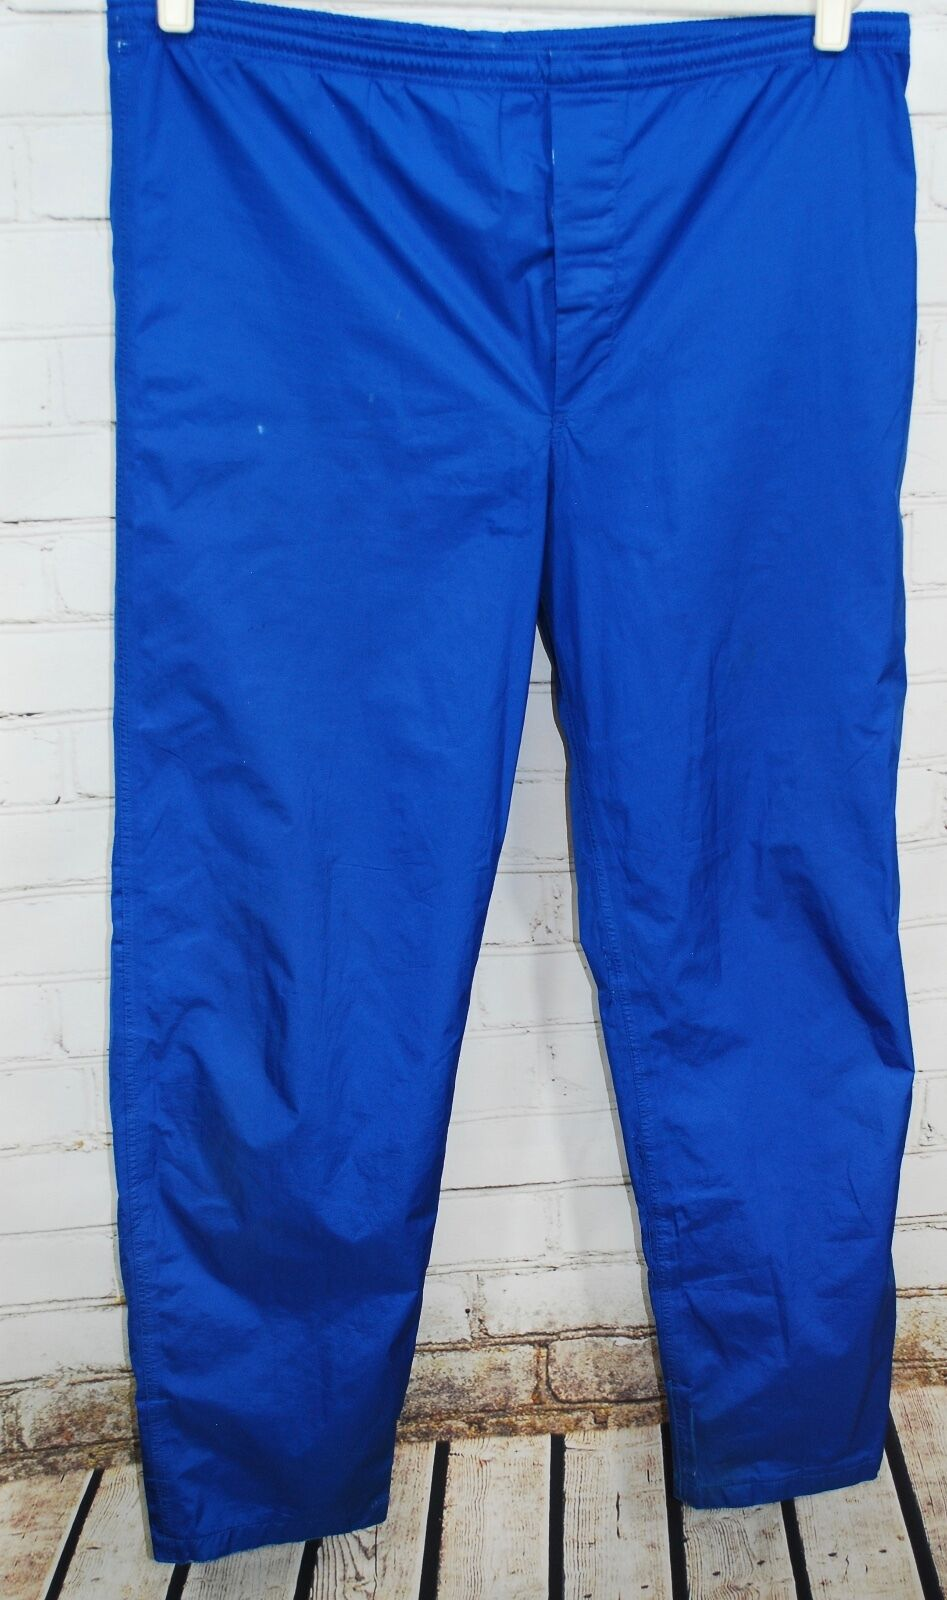 Eddie Bauer GORETEX Waterproof Camping Pants Men's L bluee 32  Inseam - AS IS